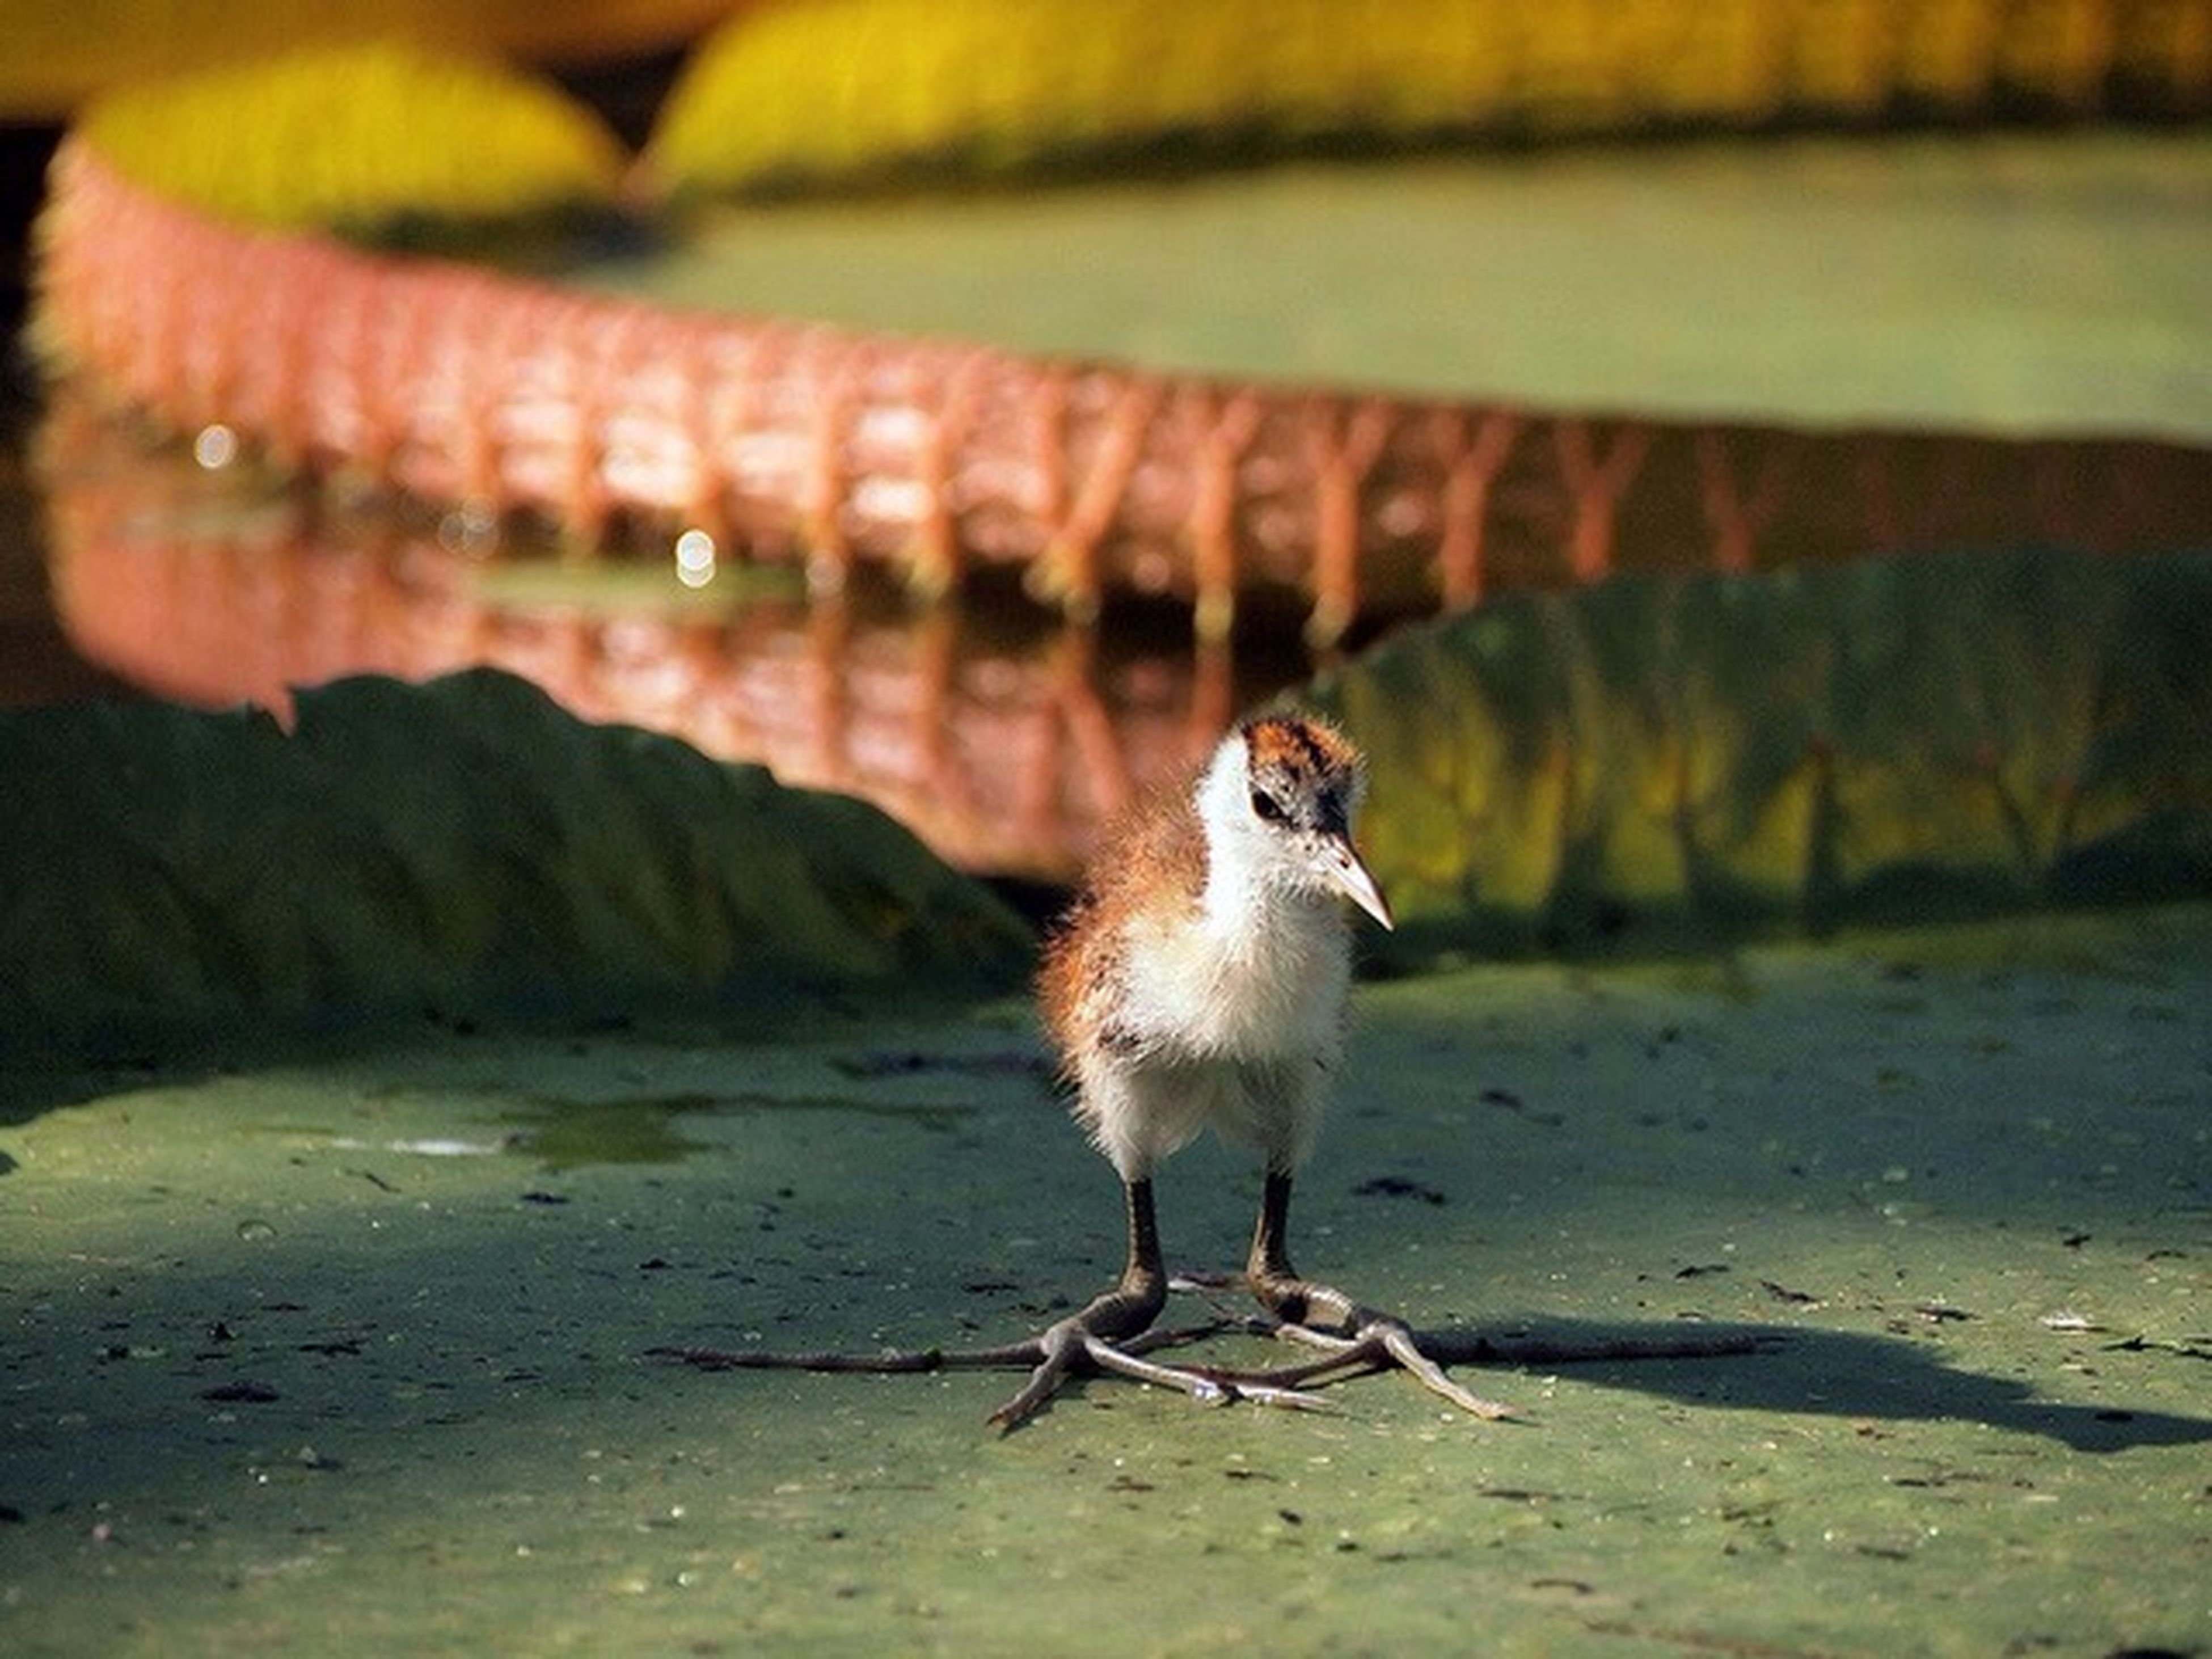 animal themes, one animal, bird, animals in the wild, wildlife, focus on foreground, full length, perching, close-up, outdoors, nature, side view, beak, day, looking away, selective focus, sunlight, no people, seagull, walking